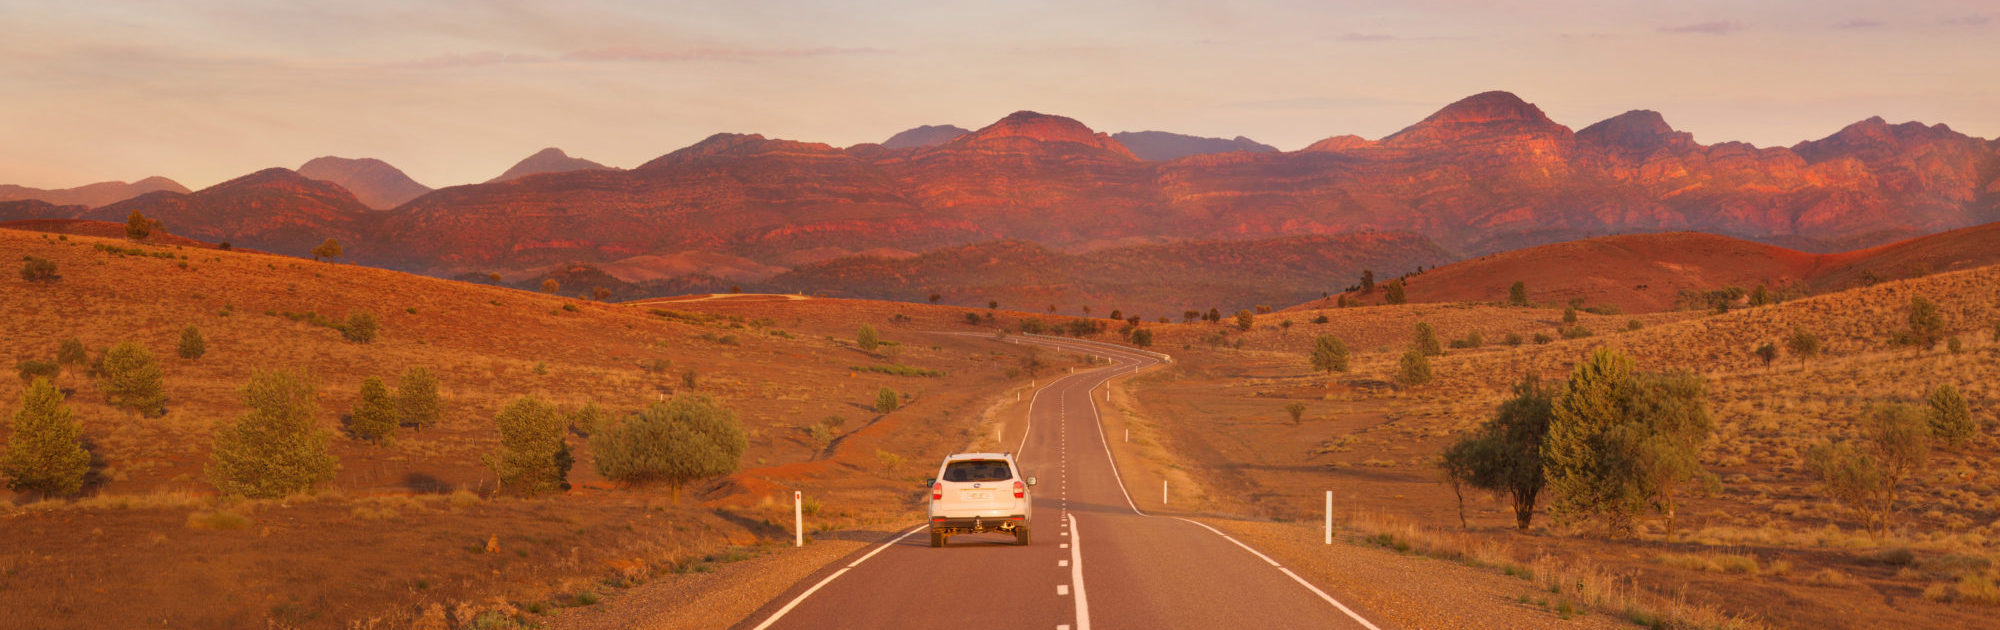 Australien_South Australia_Adelaide_Flinders Ranges Way_Auto vor Bergen / Fotocredit: Adam Bruzzone